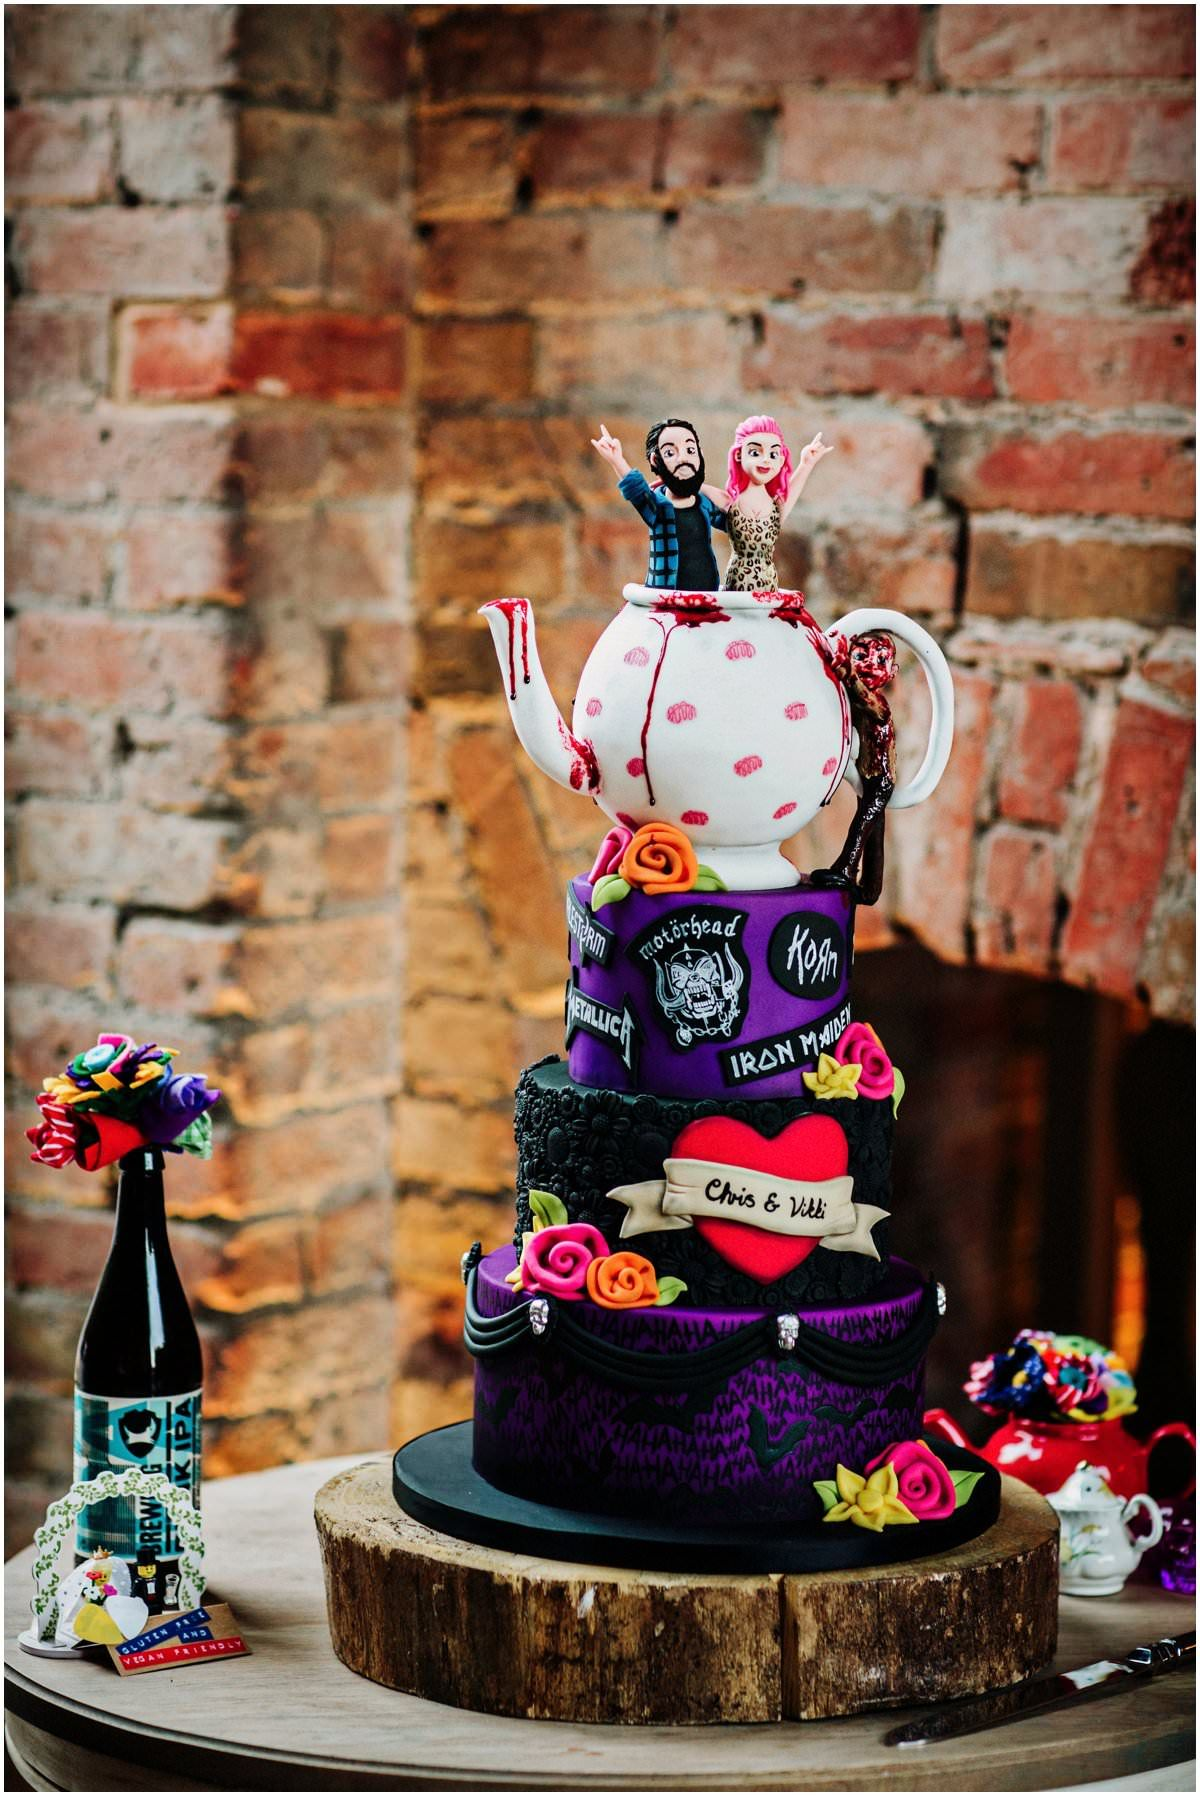 14 Of The Best Wedding Cakes Ever Cool Wedding Cakes Rustic